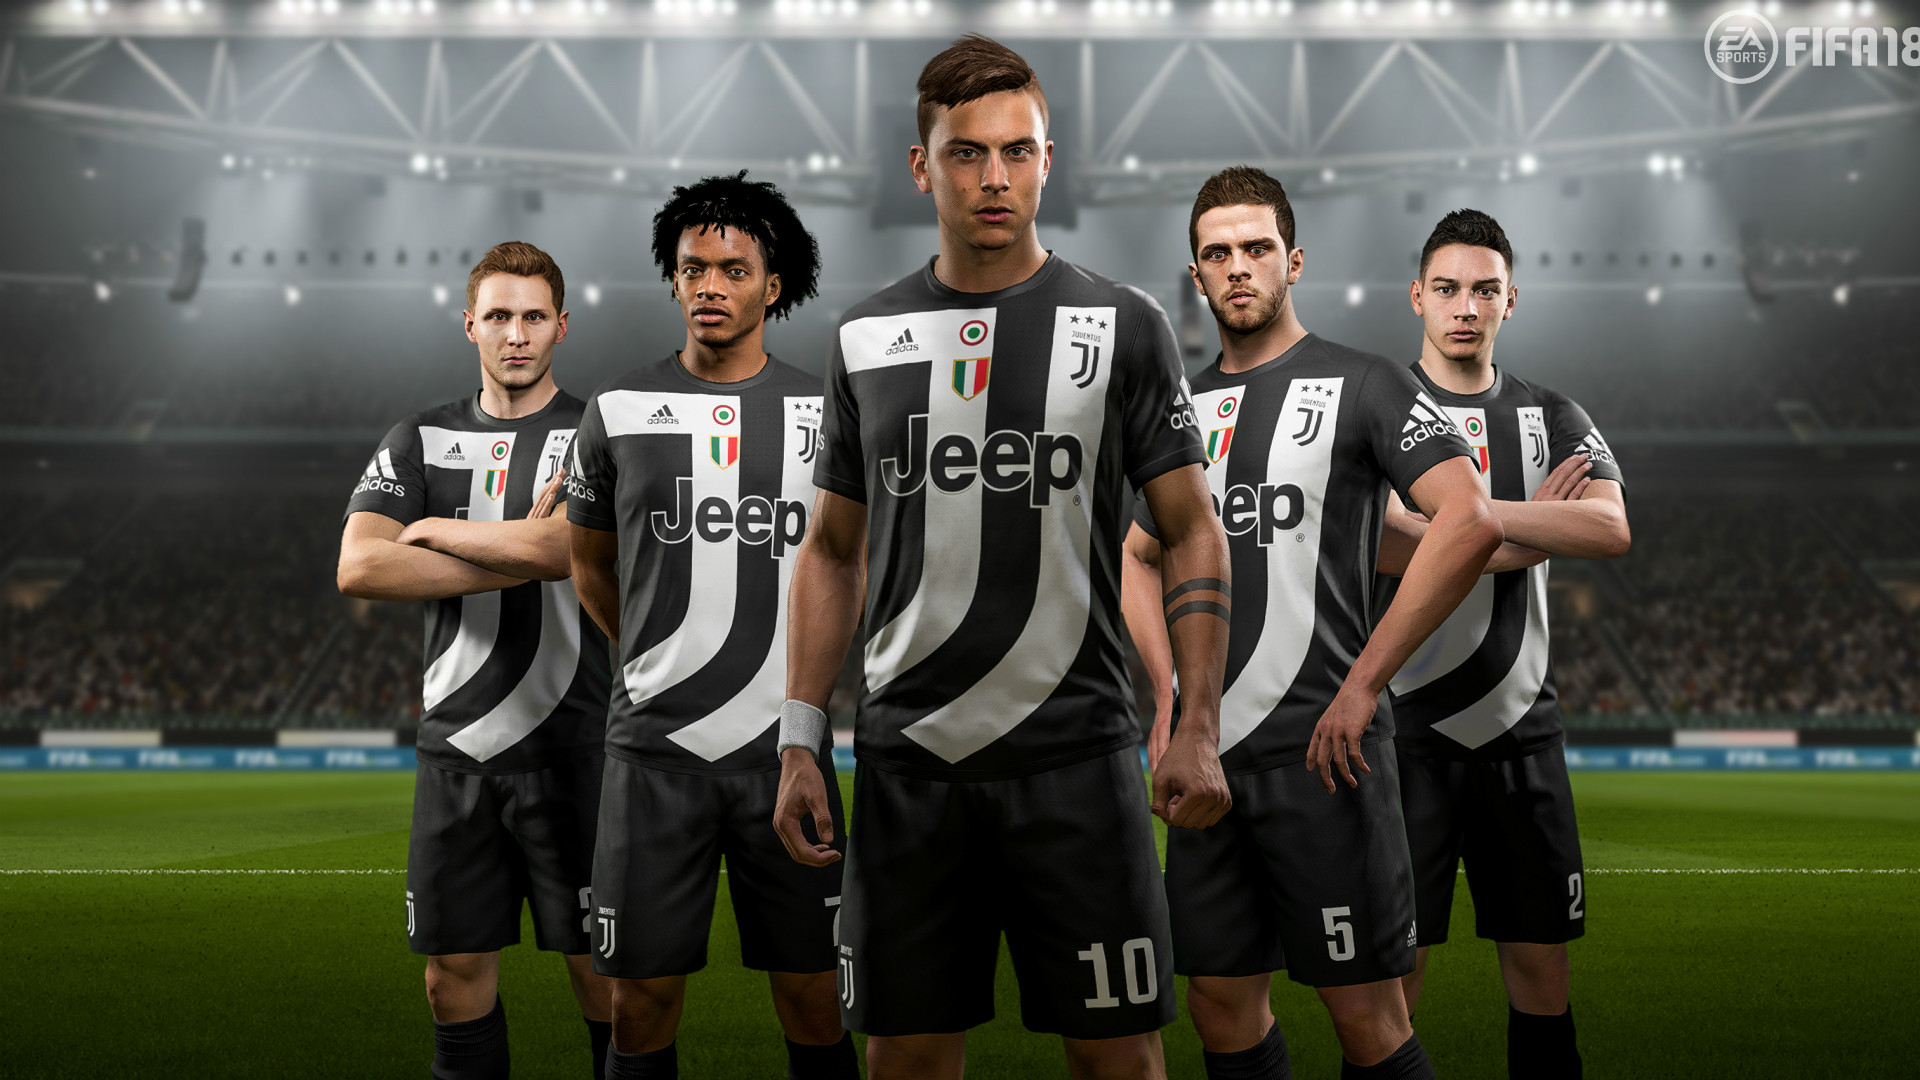 juventus 4 kit fifa 18